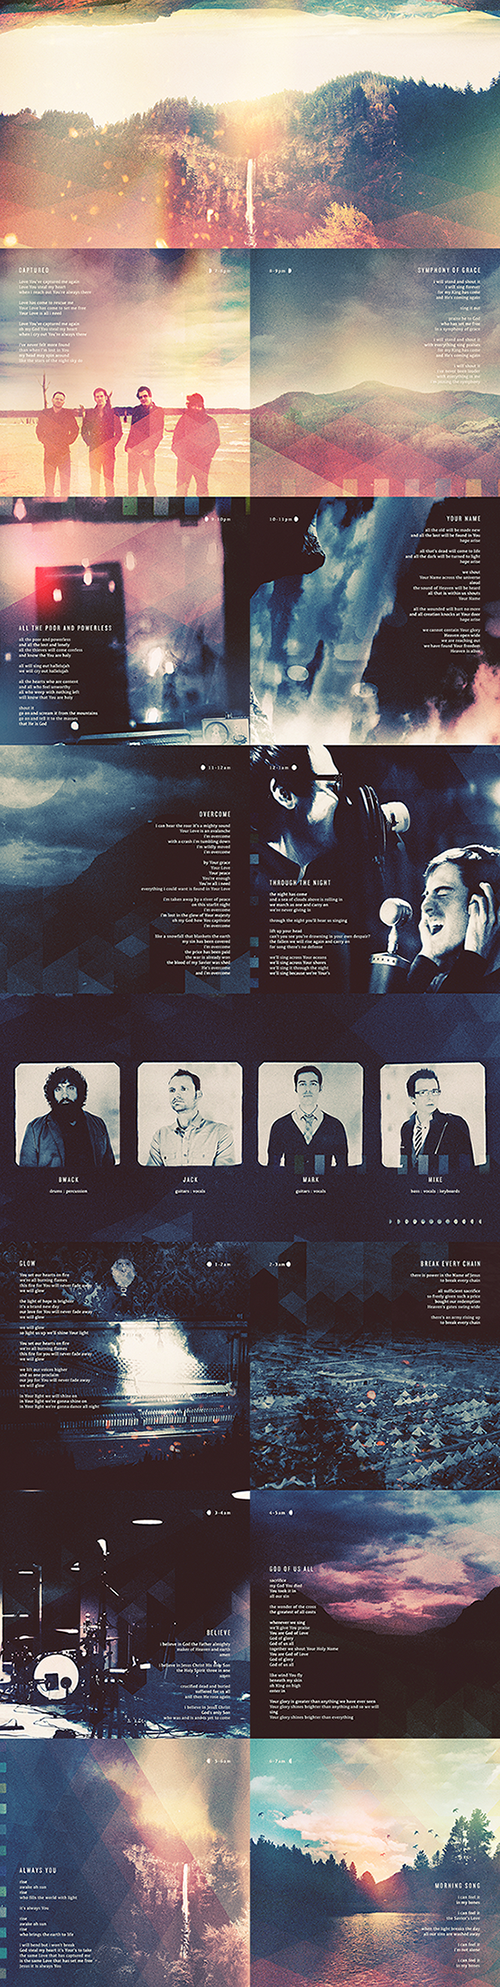 Ryan >> Dribbble - TDA_booklet_layout.png by ryan weaver